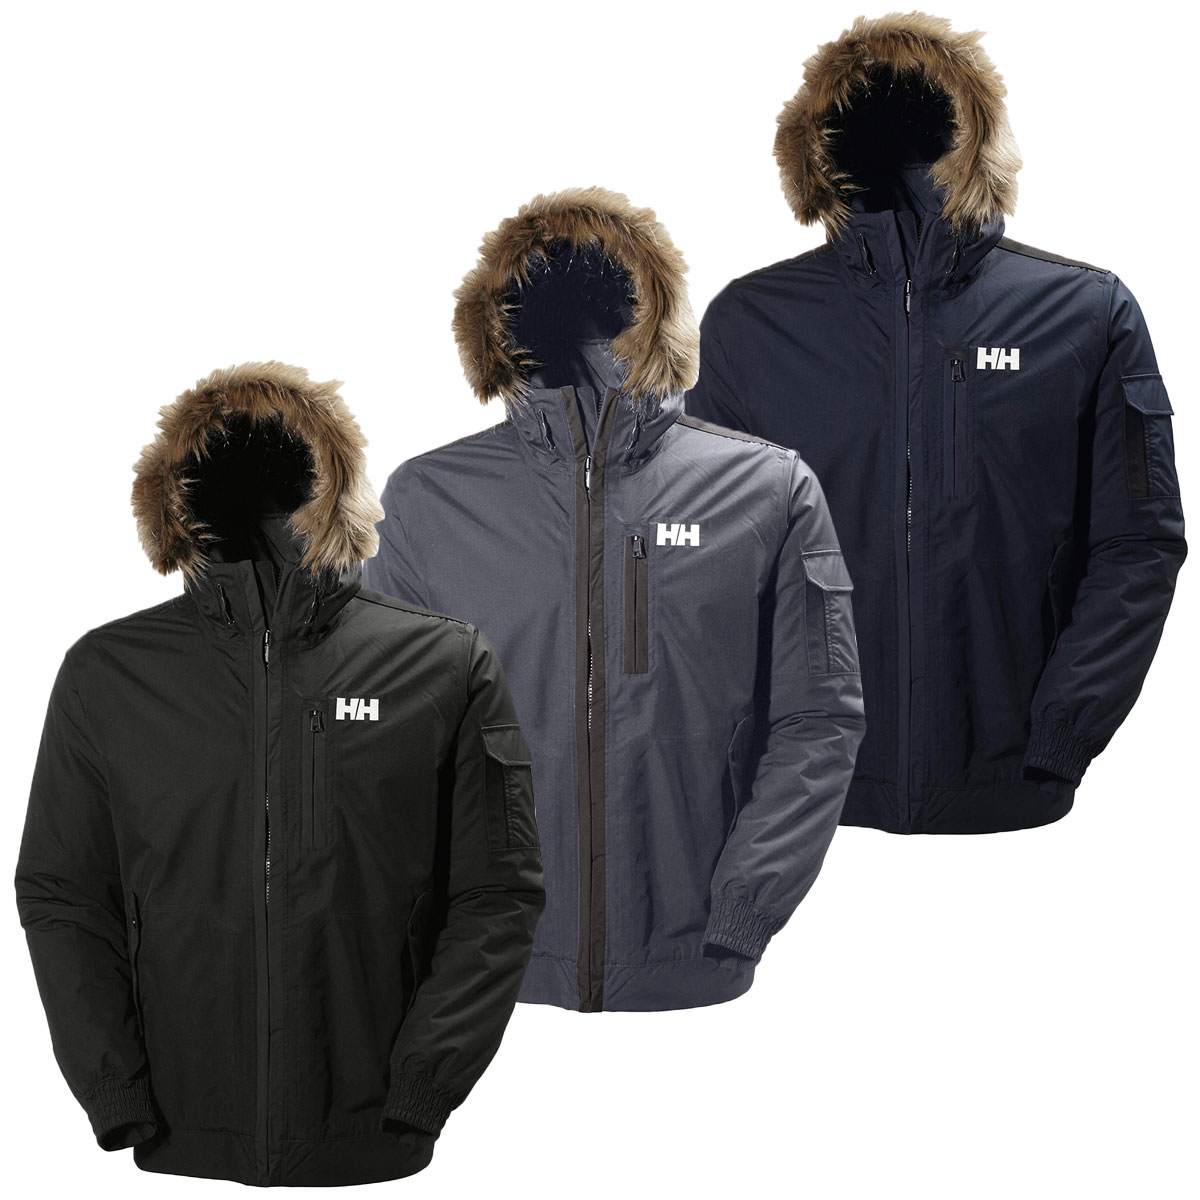 Coat Waterproof Outdoor Helly Bomber Mens Hansen 26 Jacket Dubliner xnXBqB0rI4